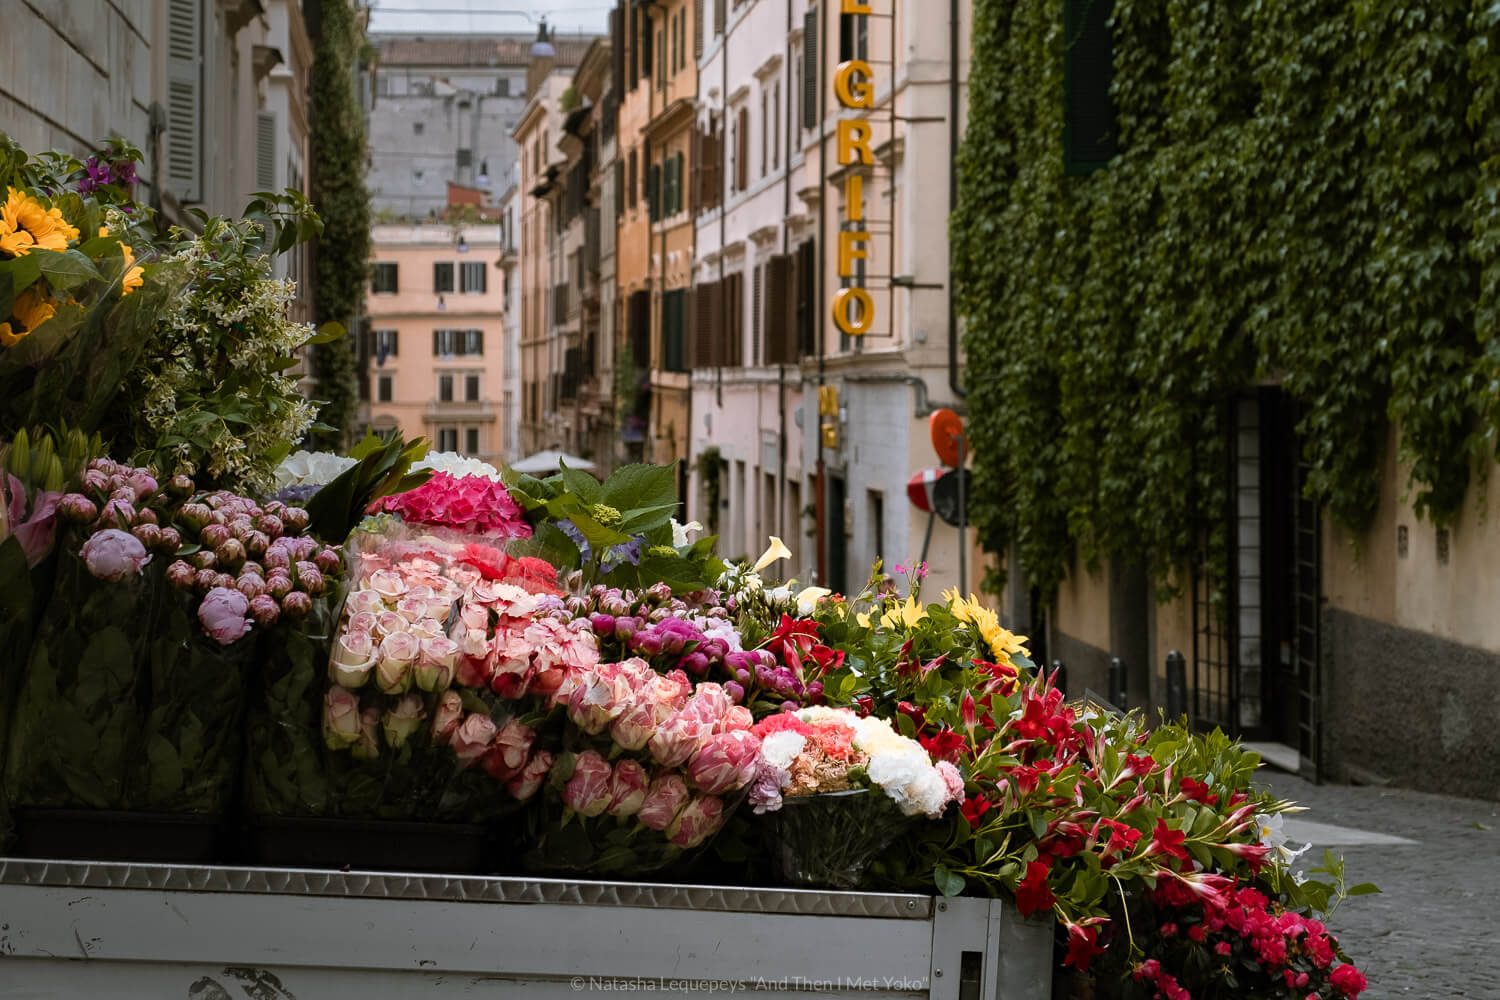 """Flowers in Monti in Rome, Italy. Travel photography and guide by © Natasha Lequepeys for """"And Then I Met Yoko"""". #rome #italy #travelblog #travelphotography"""